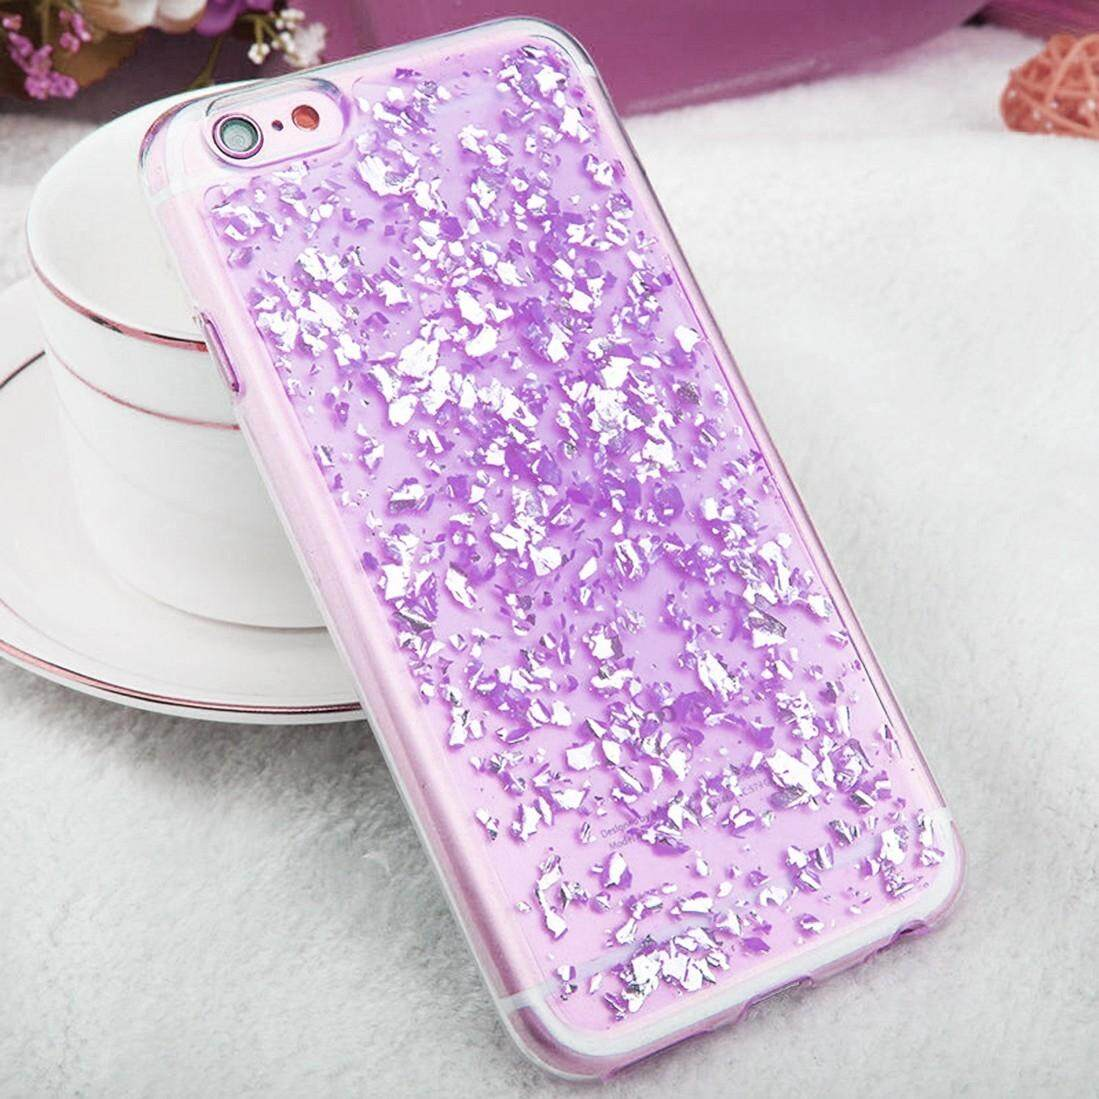 For iPhone 6 Plus & 6s Plus Scattered Platinum Pattern TPU Protective Case(Purple) - intl